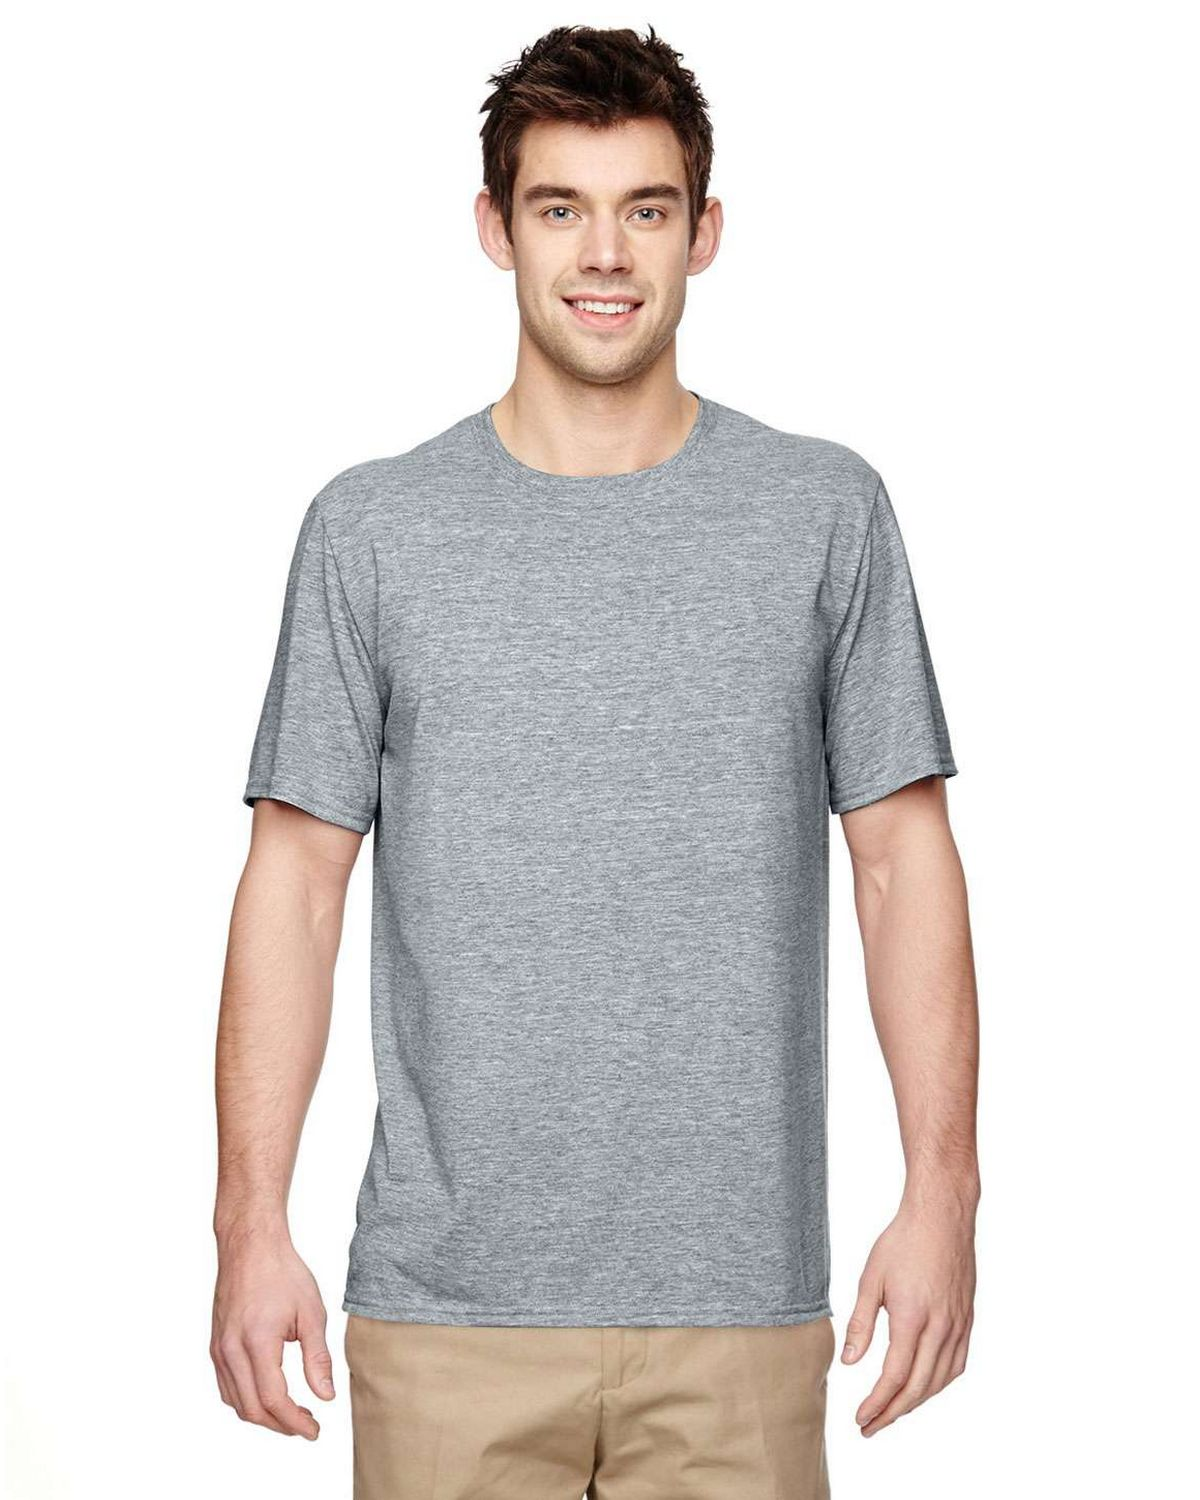 Gildan G420 Performance T-Shirt - Sport Grey - 3XL G420